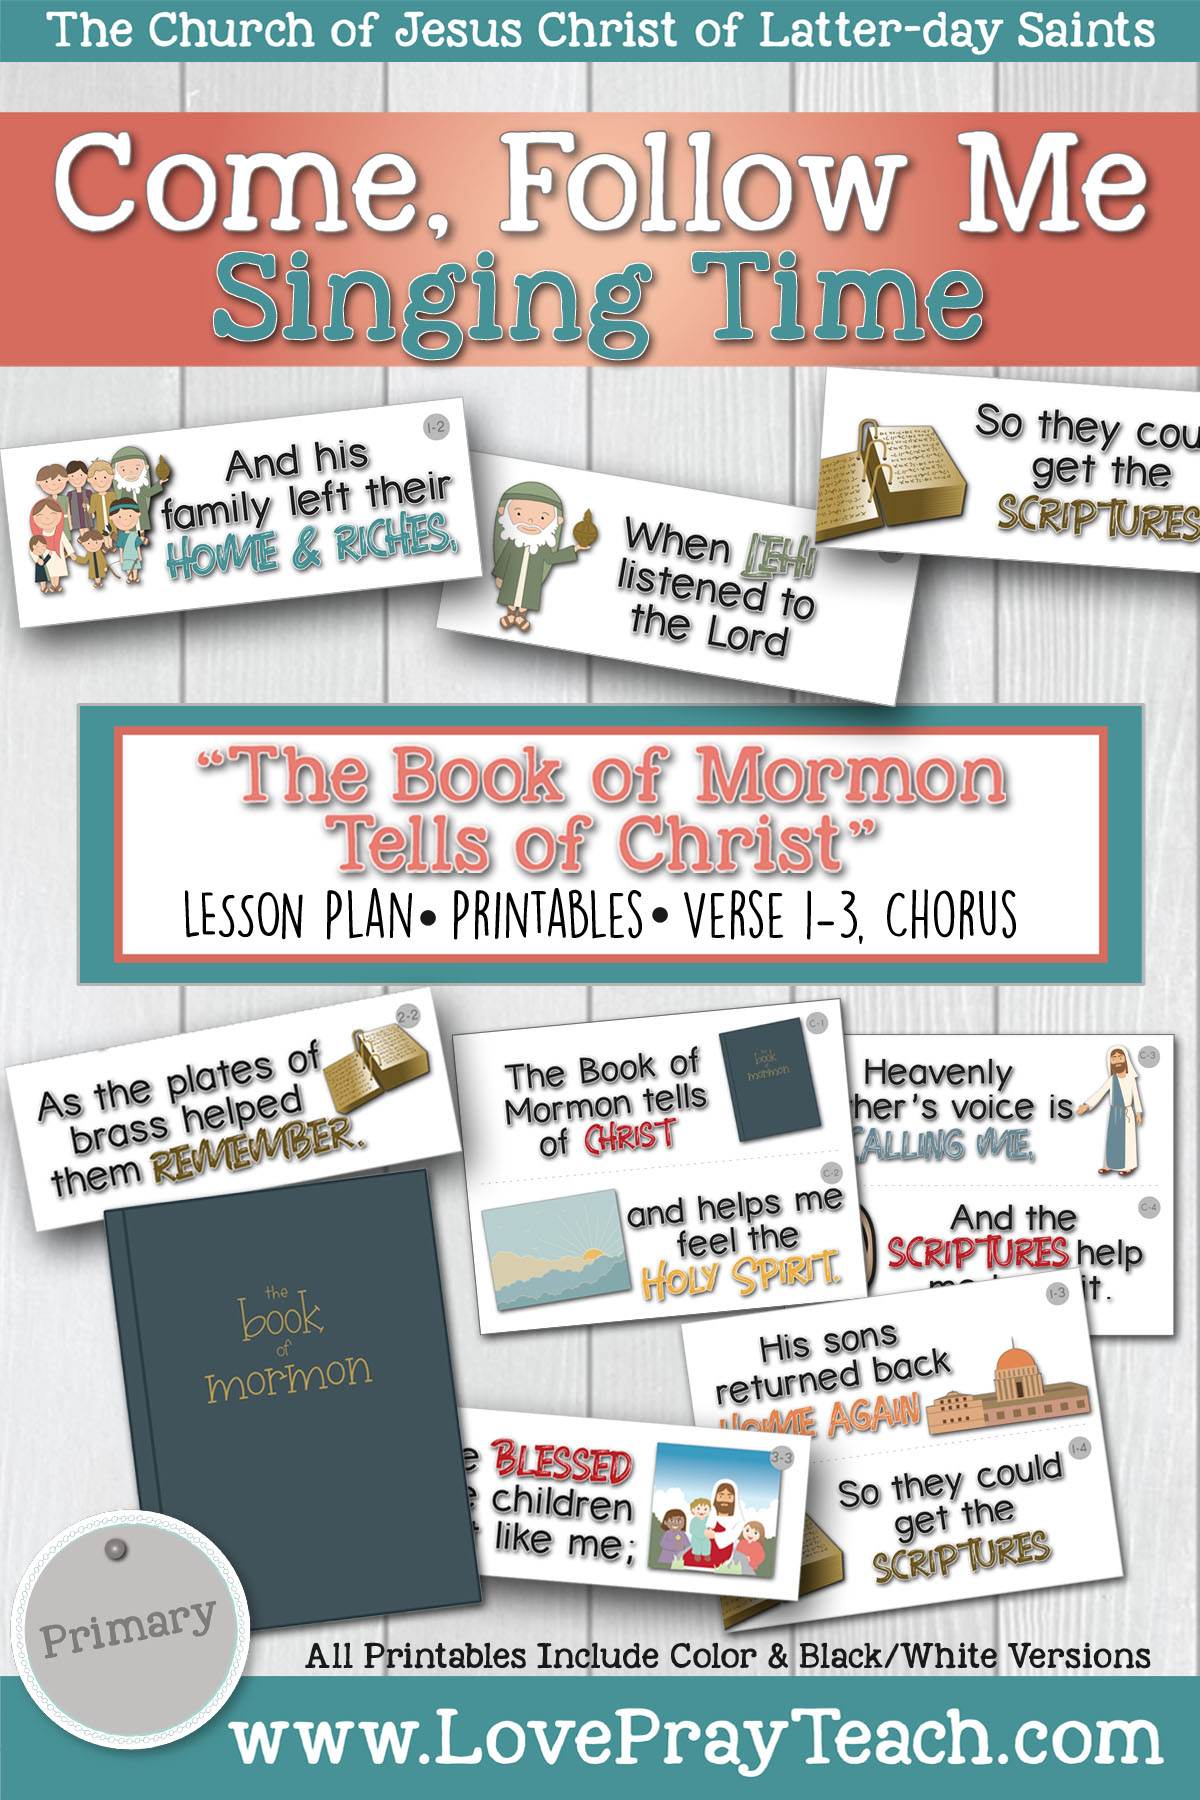 "Come, Follow Me for Primary Singing Time: 2020 """"The Book of Mormon Tells of Christ"" www.LovePrayTeach.com"